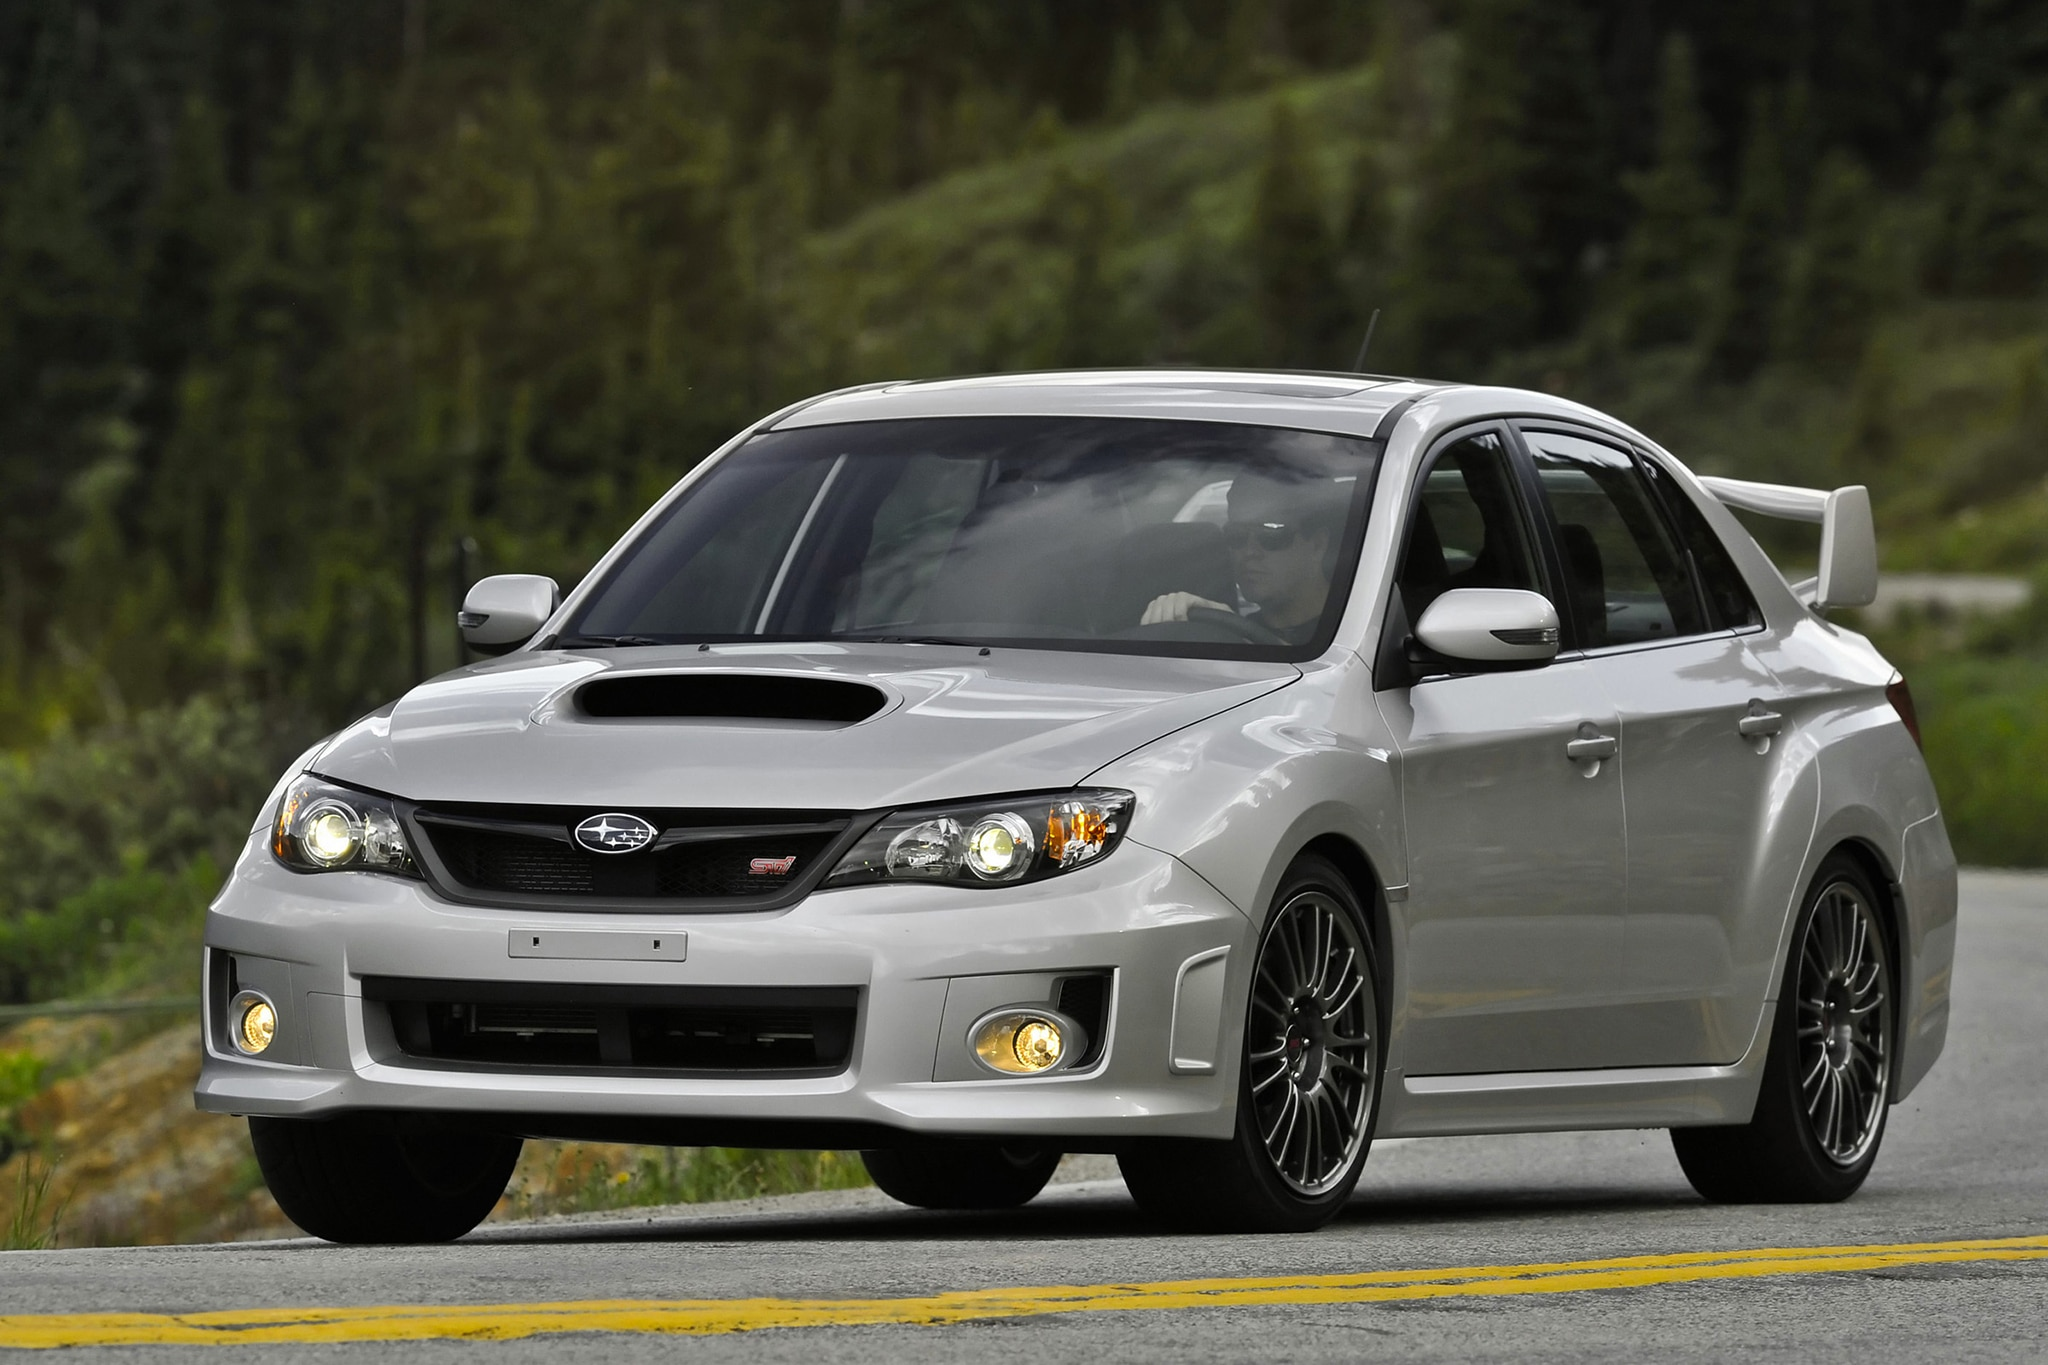 priced 2013 subaru wrx sti special edition at 35 565. Black Bedroom Furniture Sets. Home Design Ideas